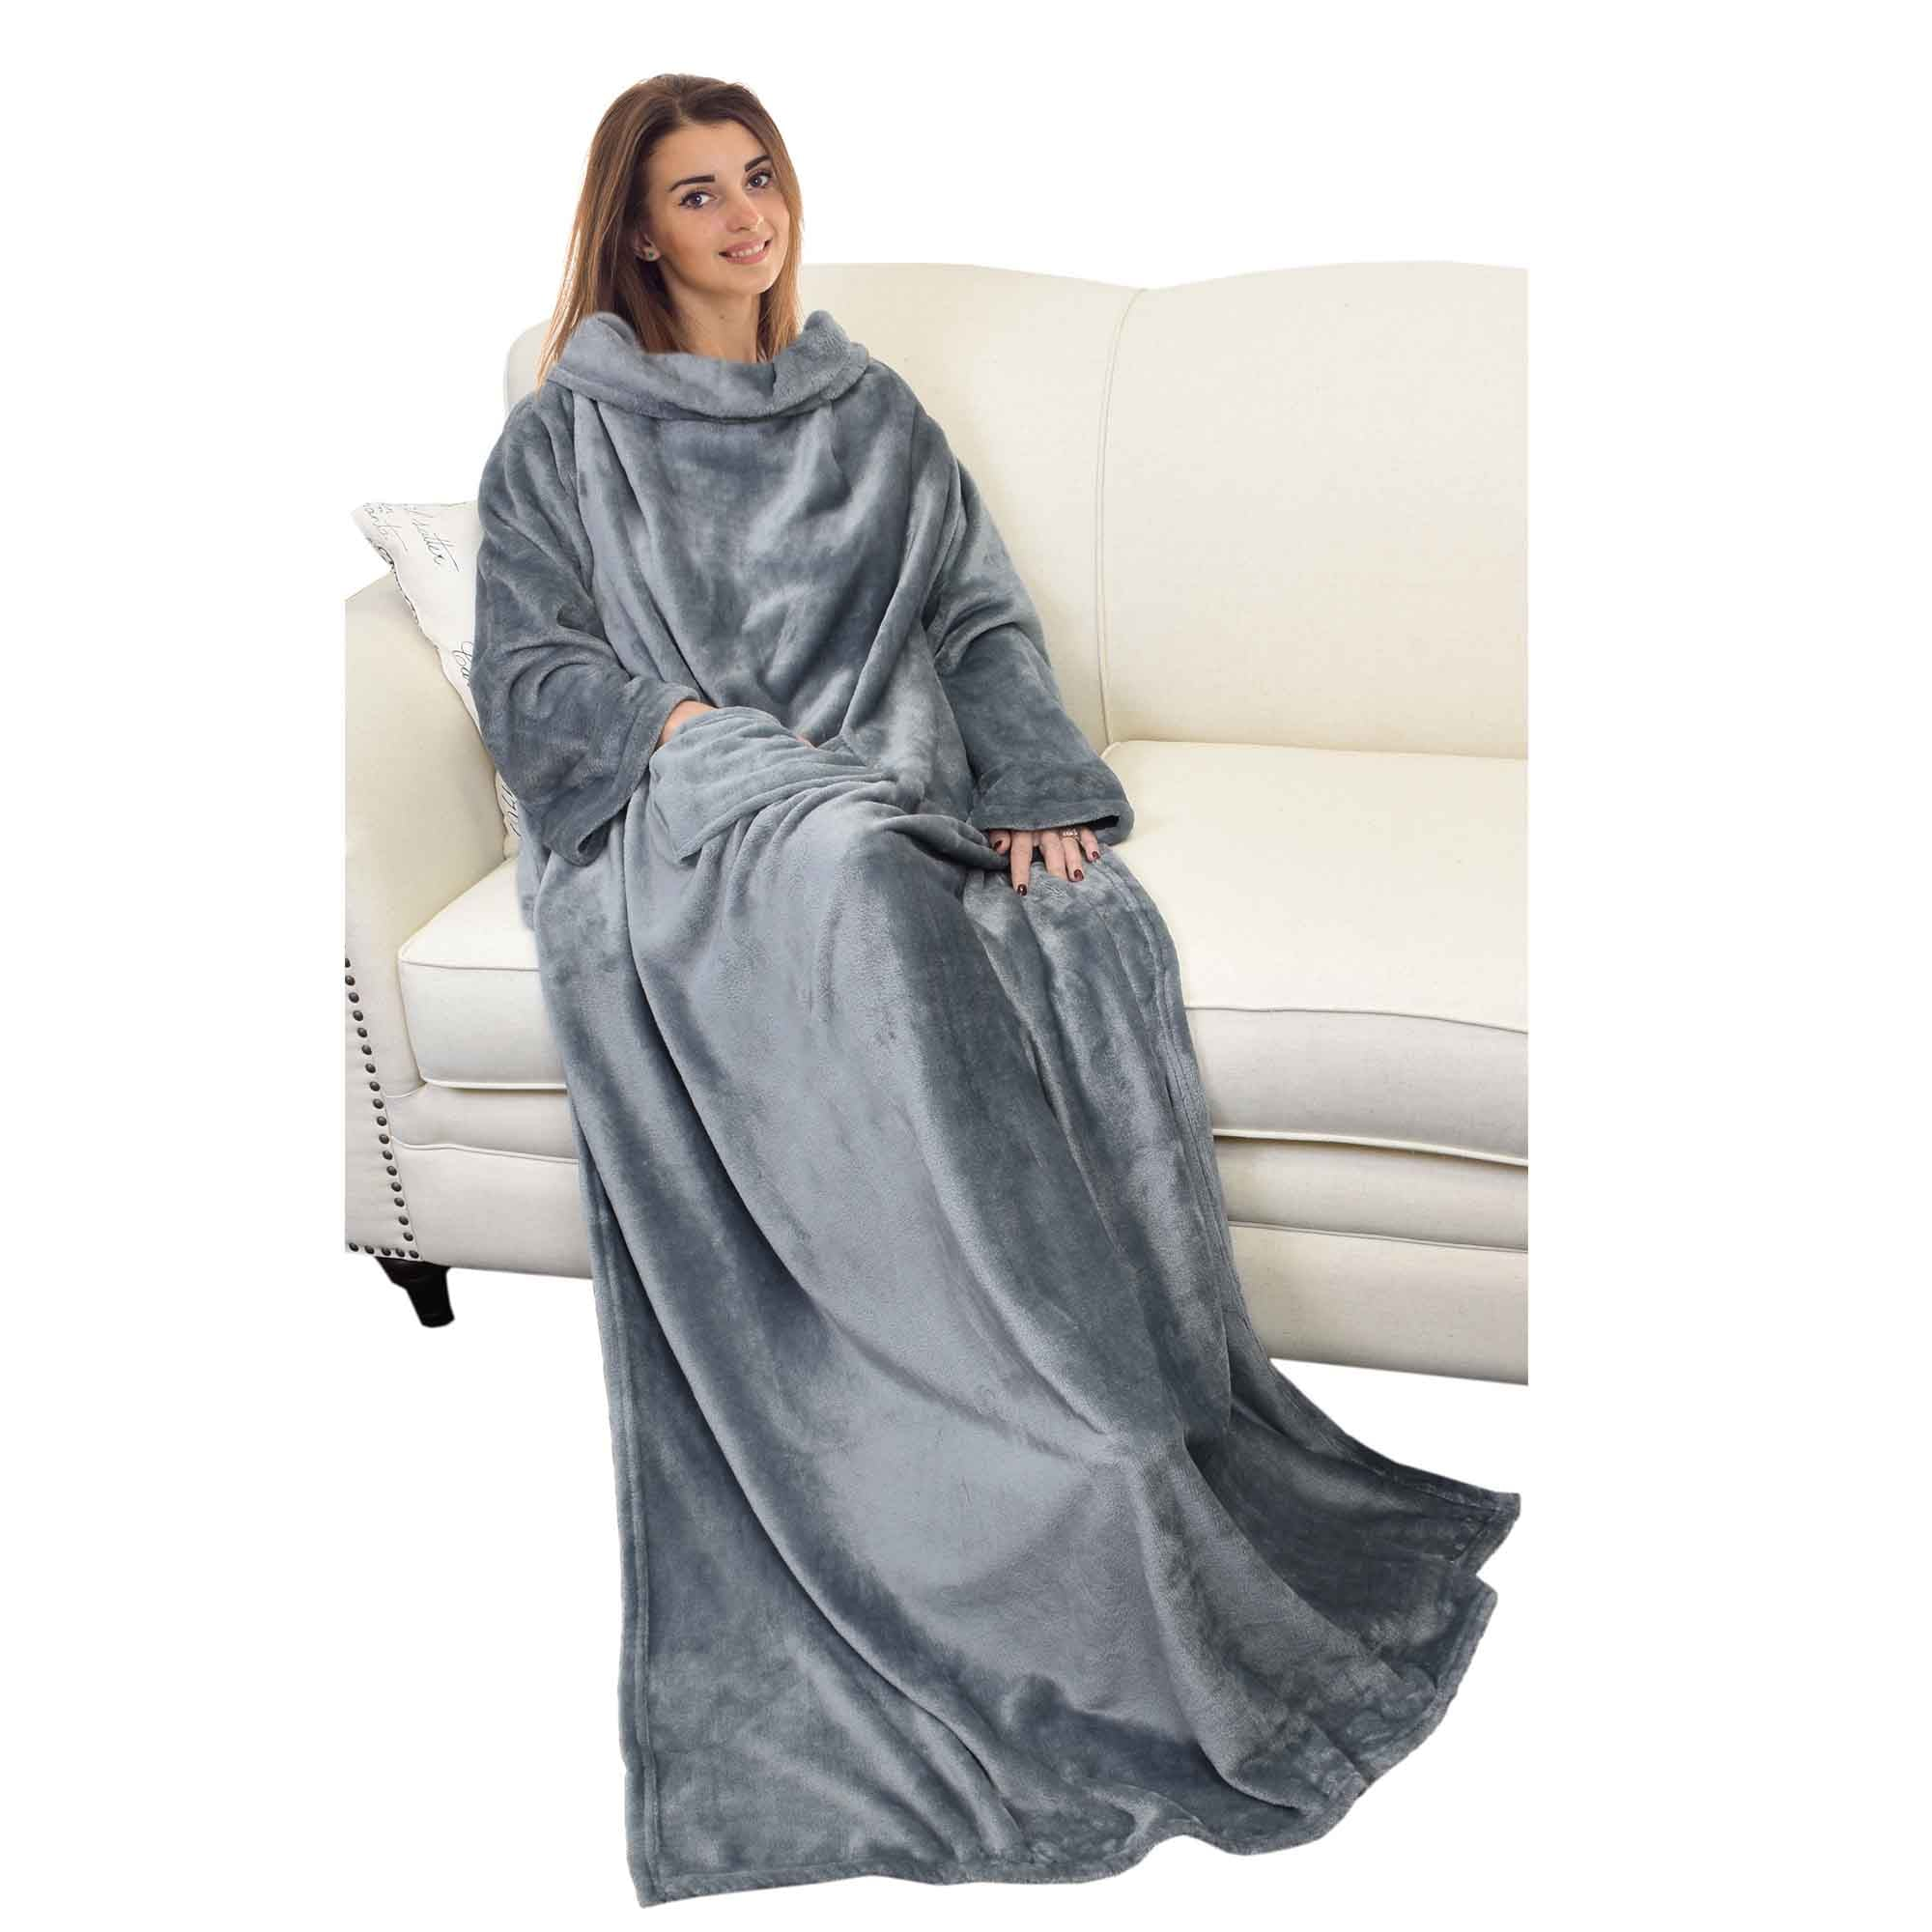 Wearable Blanket Throw Robe Micro Plush Mink Fleece with Sleeves